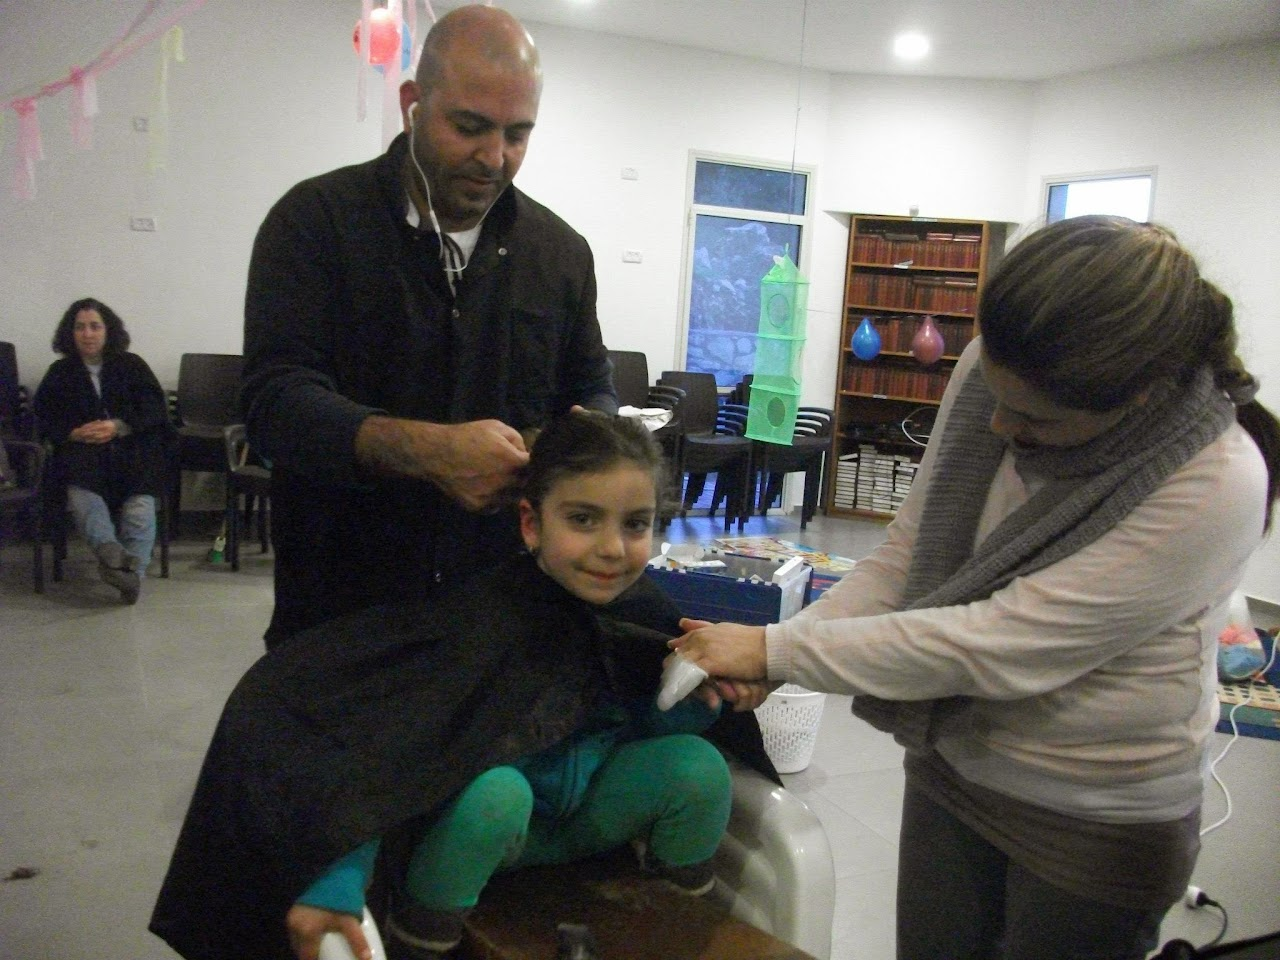 Donating hair for cancer patients 2014  - 1669870_539677946148503_1521227723_o.jpg